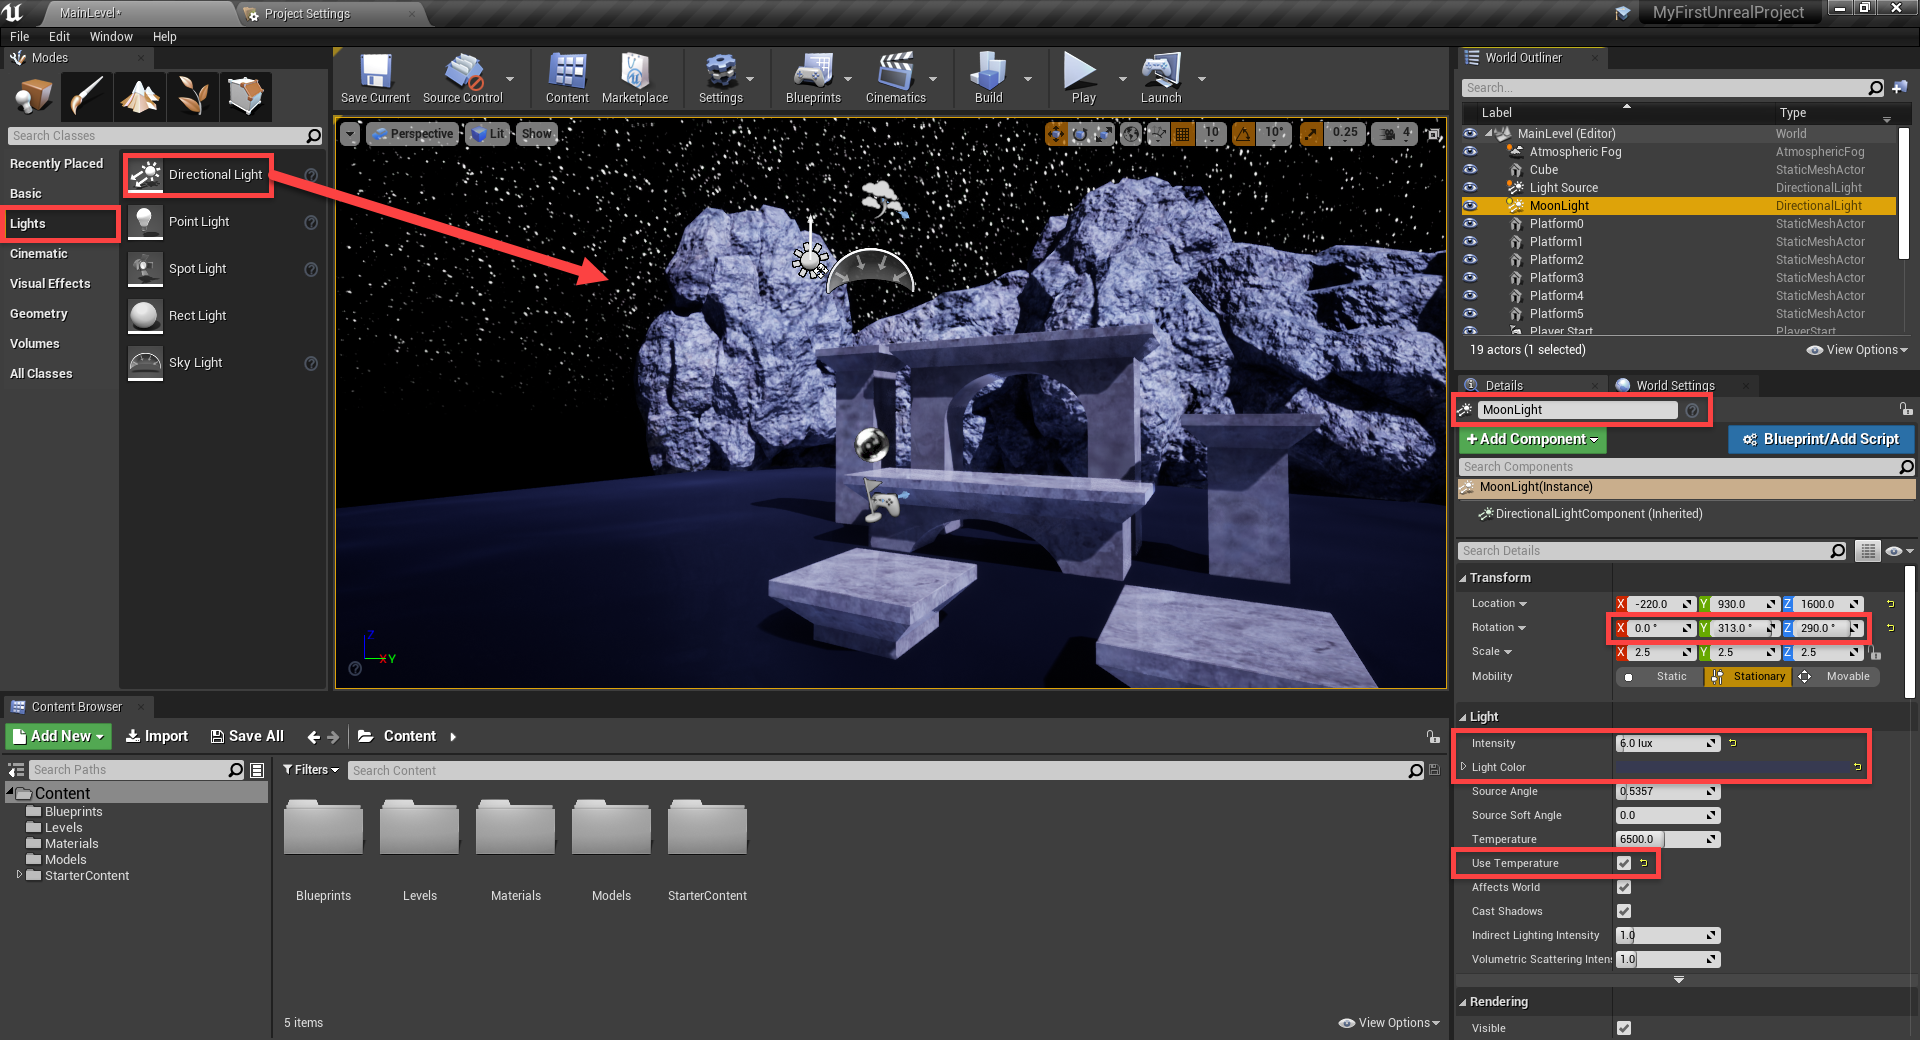 Unreal Engine with Direction Light parameters